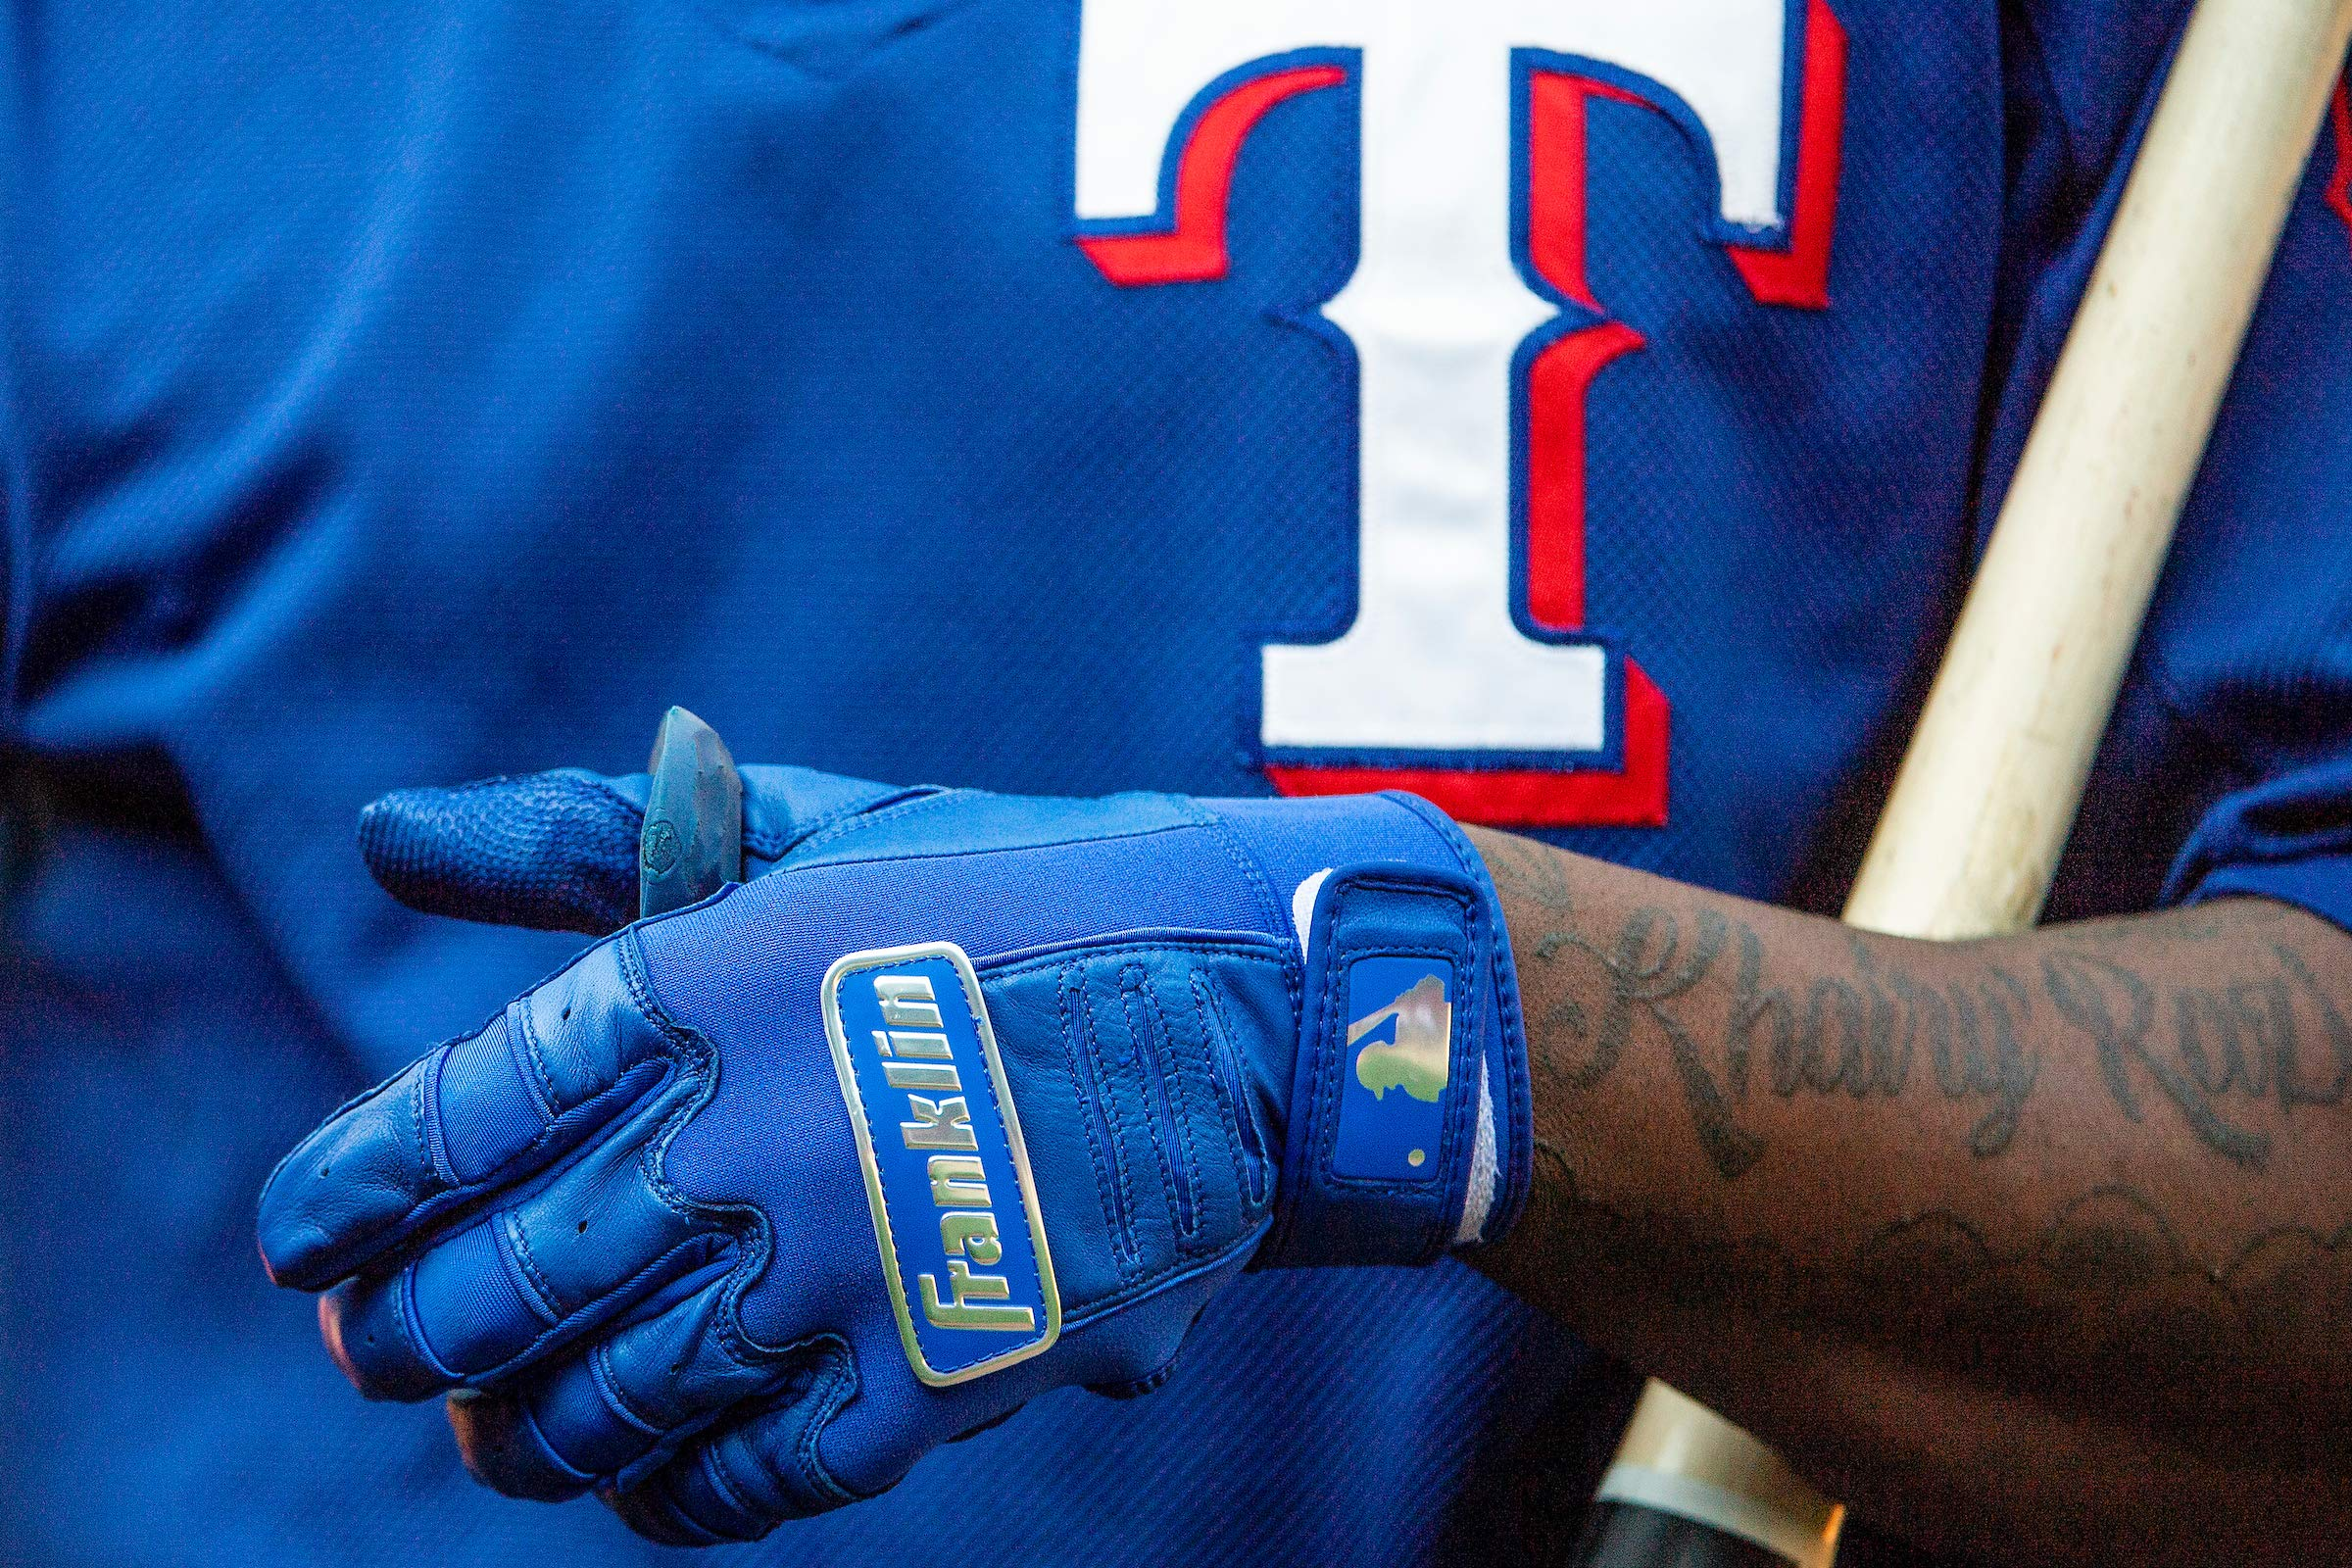 Franklin Sports CFX Pro Full Color Chrome Batting Gloves - Royal - Adult Small by Franklin Sports (Image #5)